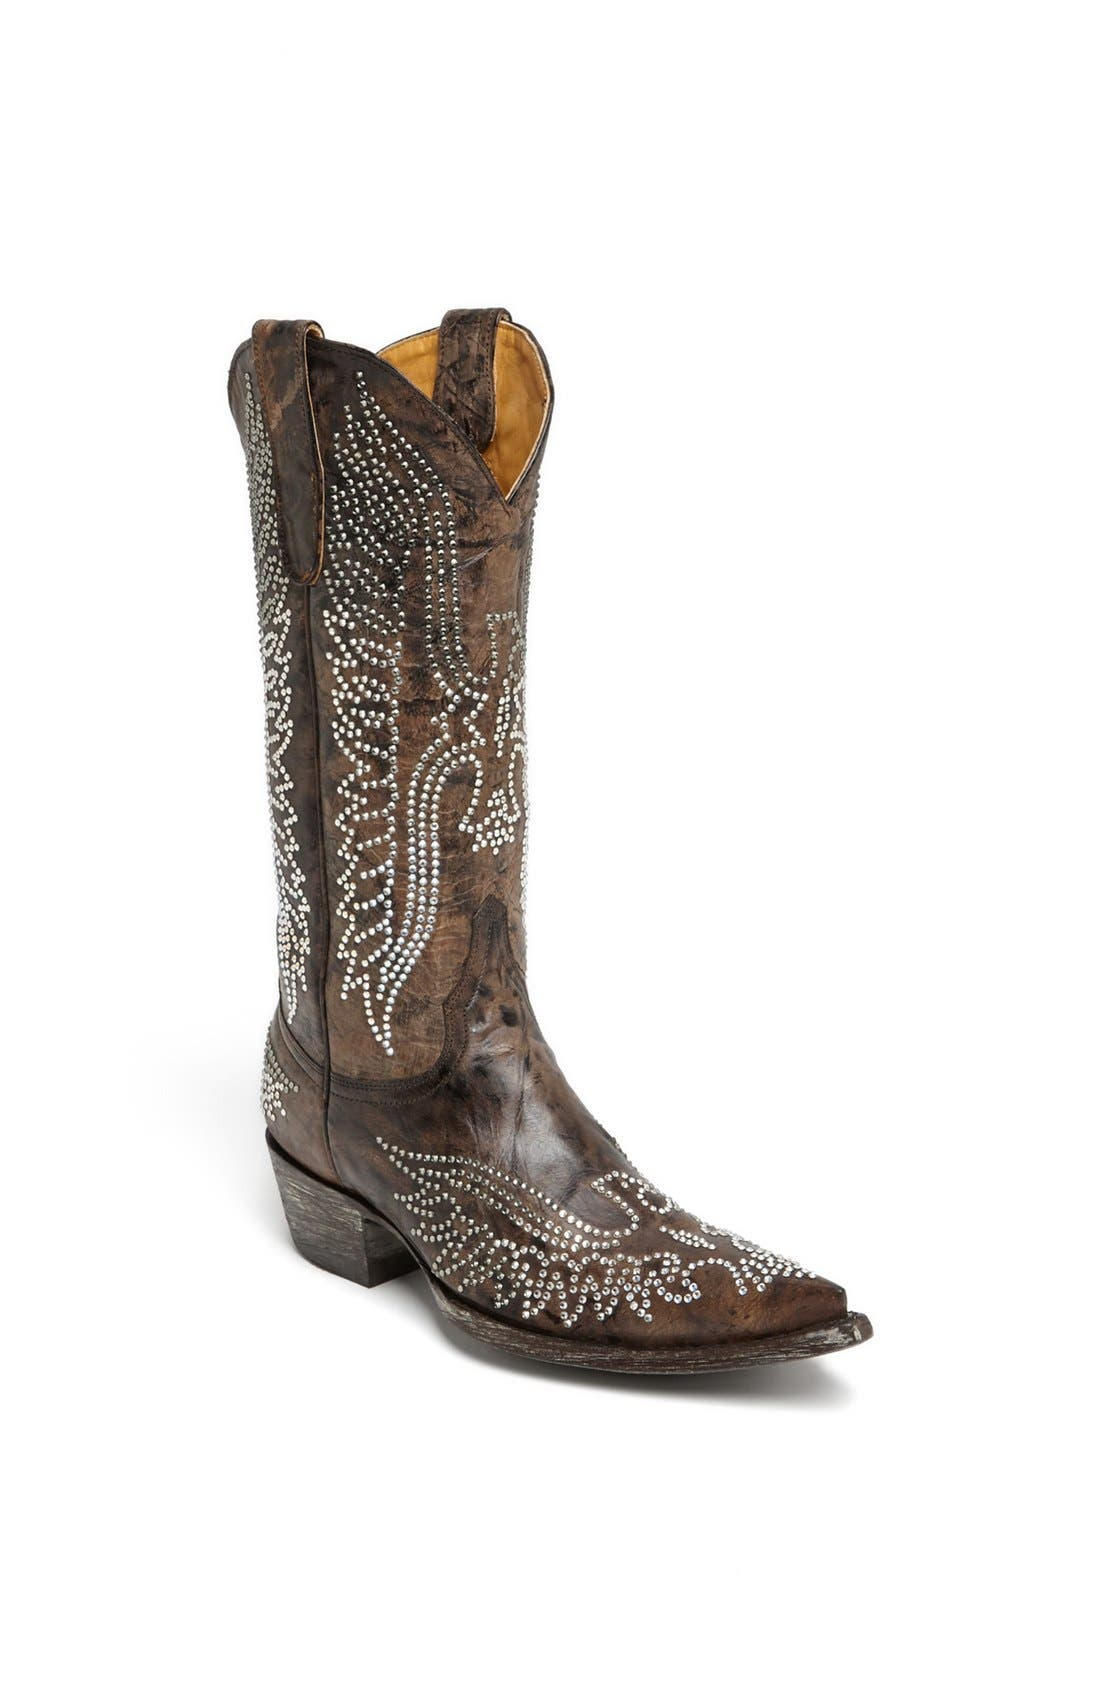 Alternate Image 1 Selected - Old Gringo 'Eagle Swarovski' Boot